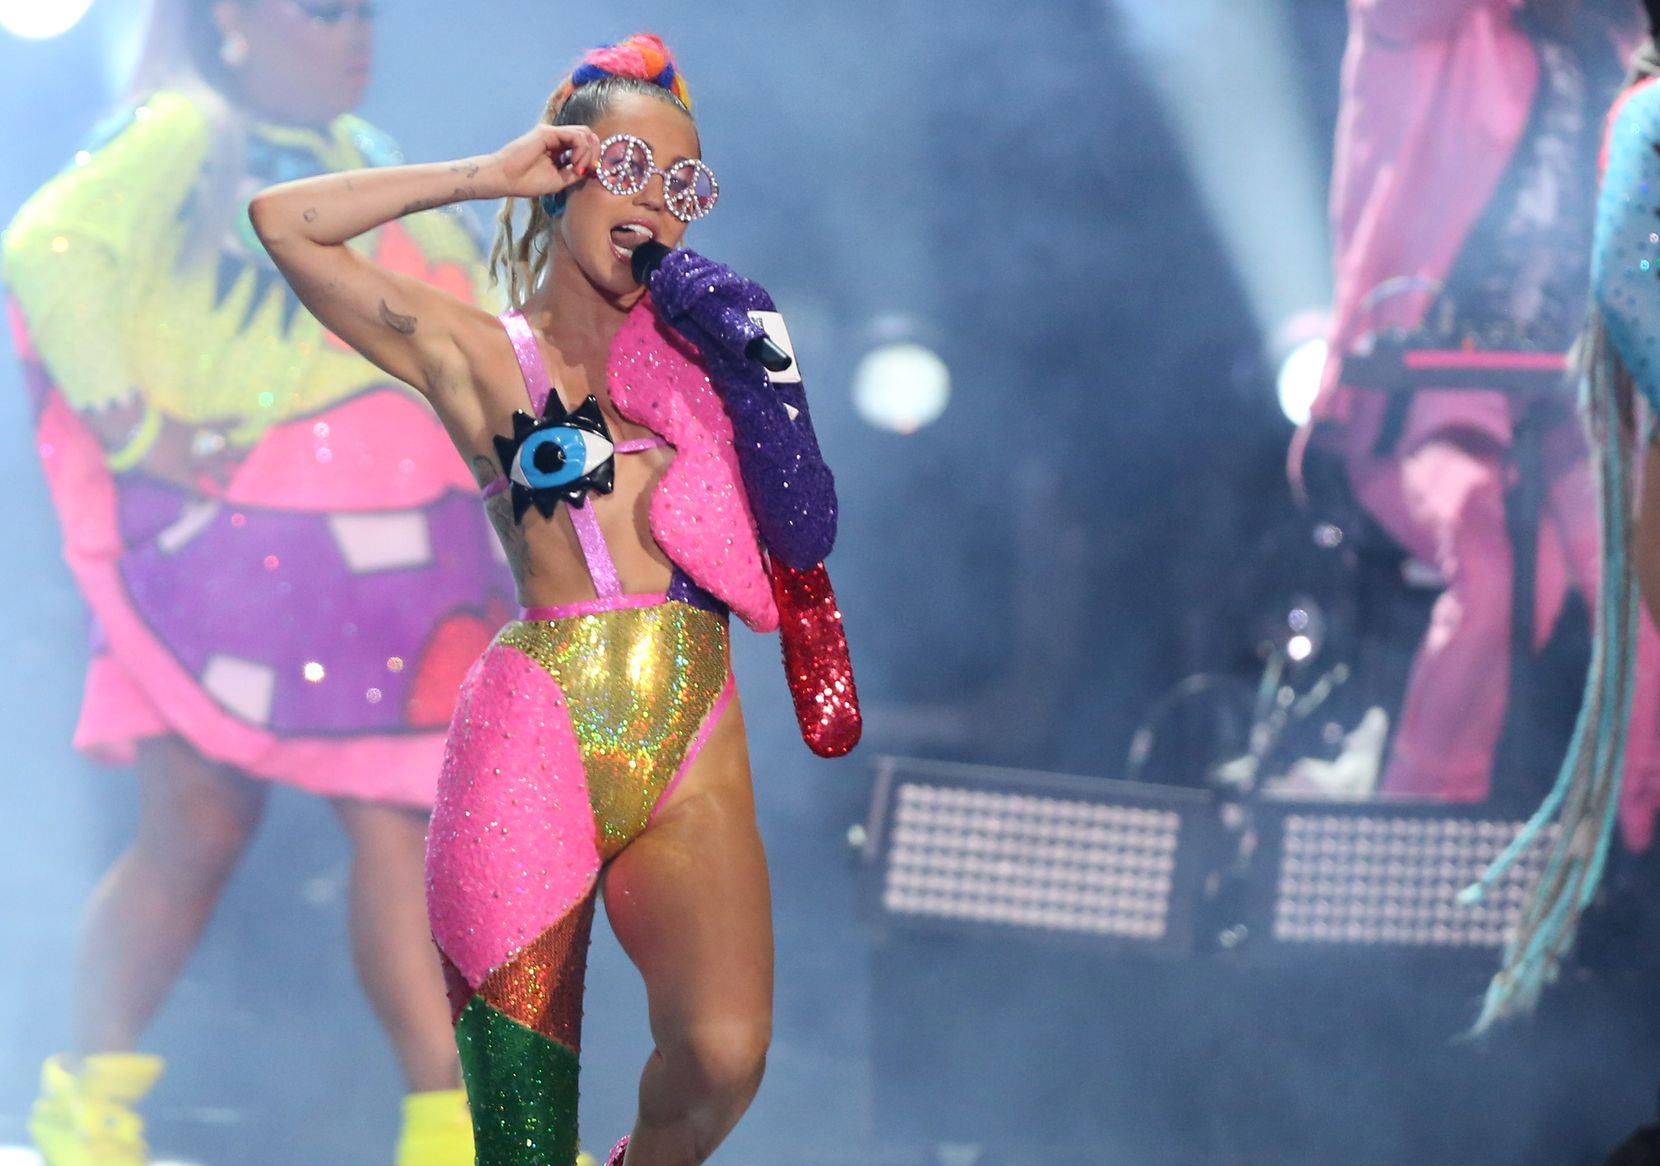 Miley Cyrus performs at the MTV Video Music Awards at the Microsoft Theater on Sunday, Aug. 30, 2015, in Los Angeles.